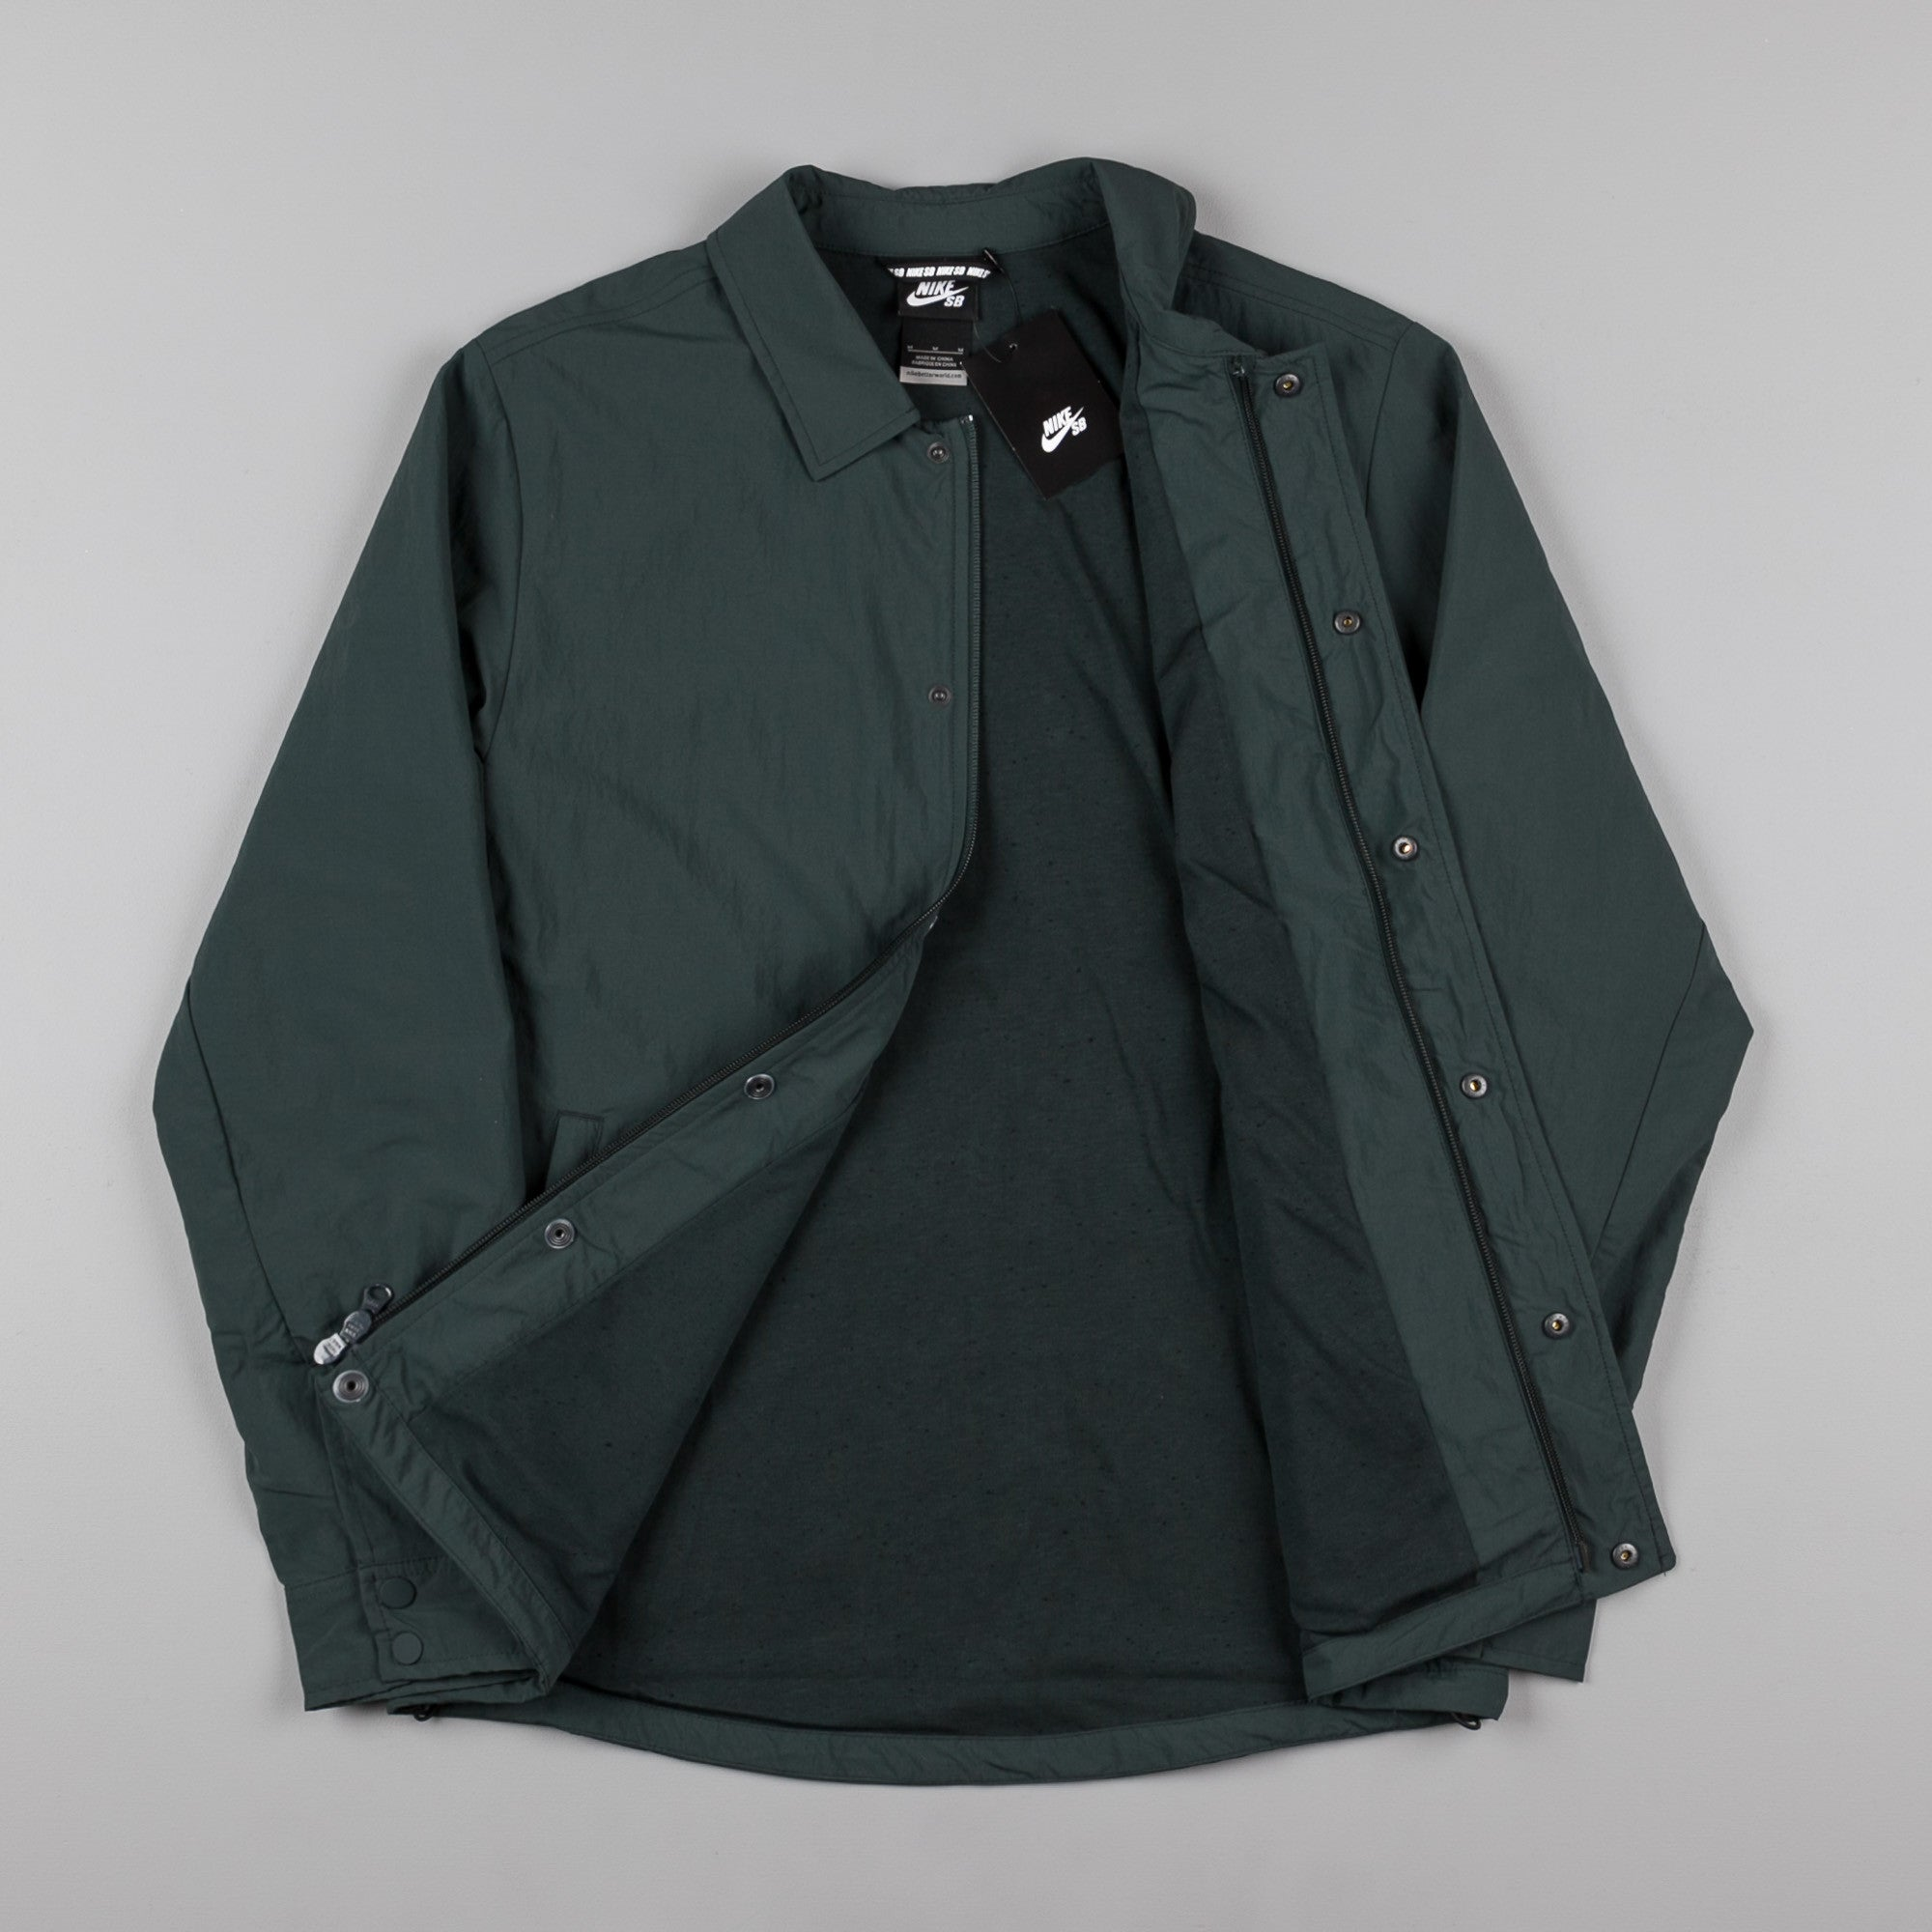 Nike SB Bolt Coaches Jacket - Seaweed / Reflective Black